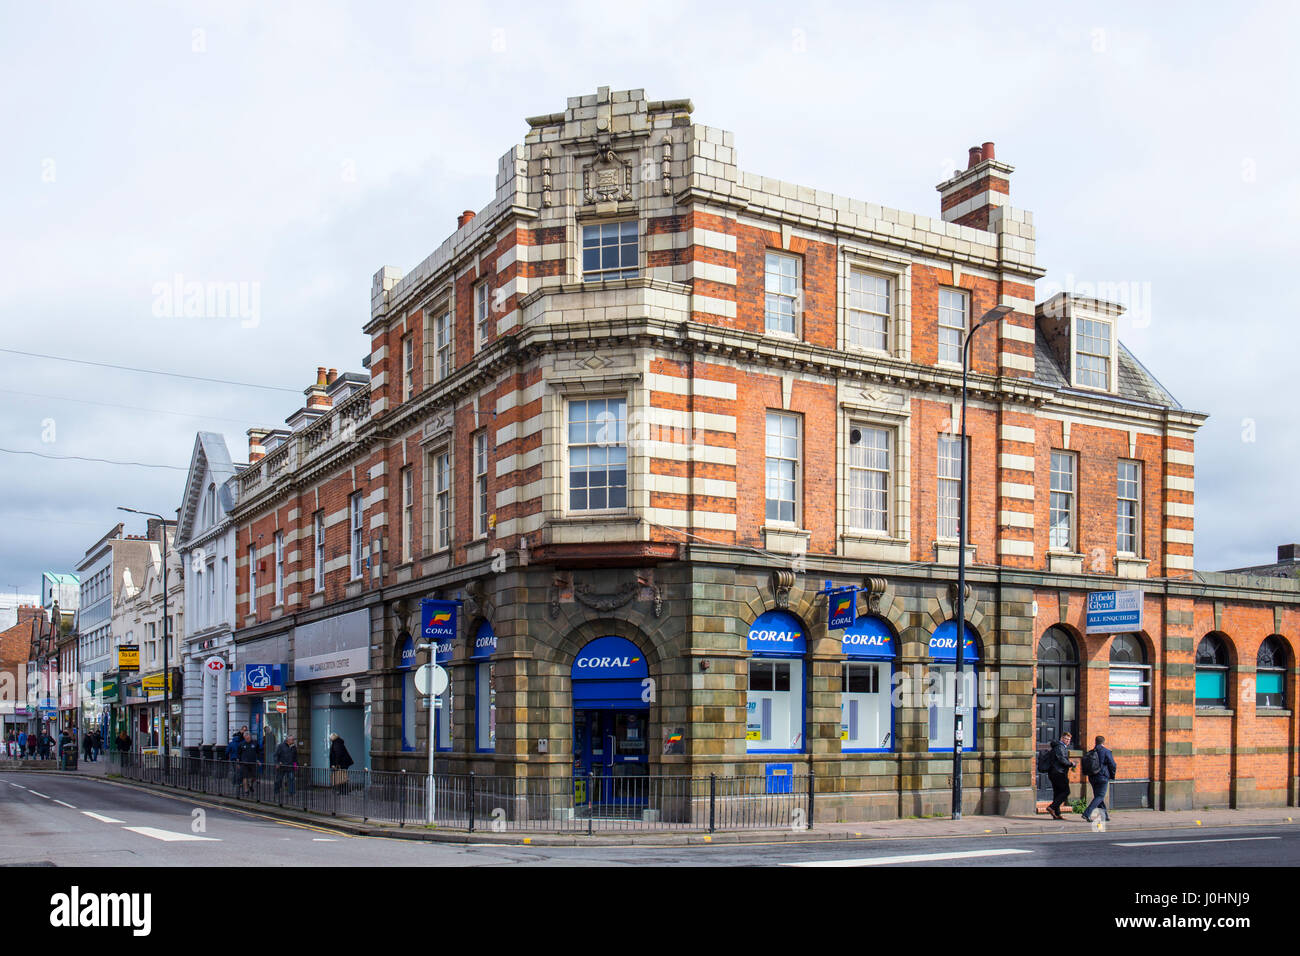 Former bank building now Coral Betting shop in Crewe Cheshire UK - Stock Image